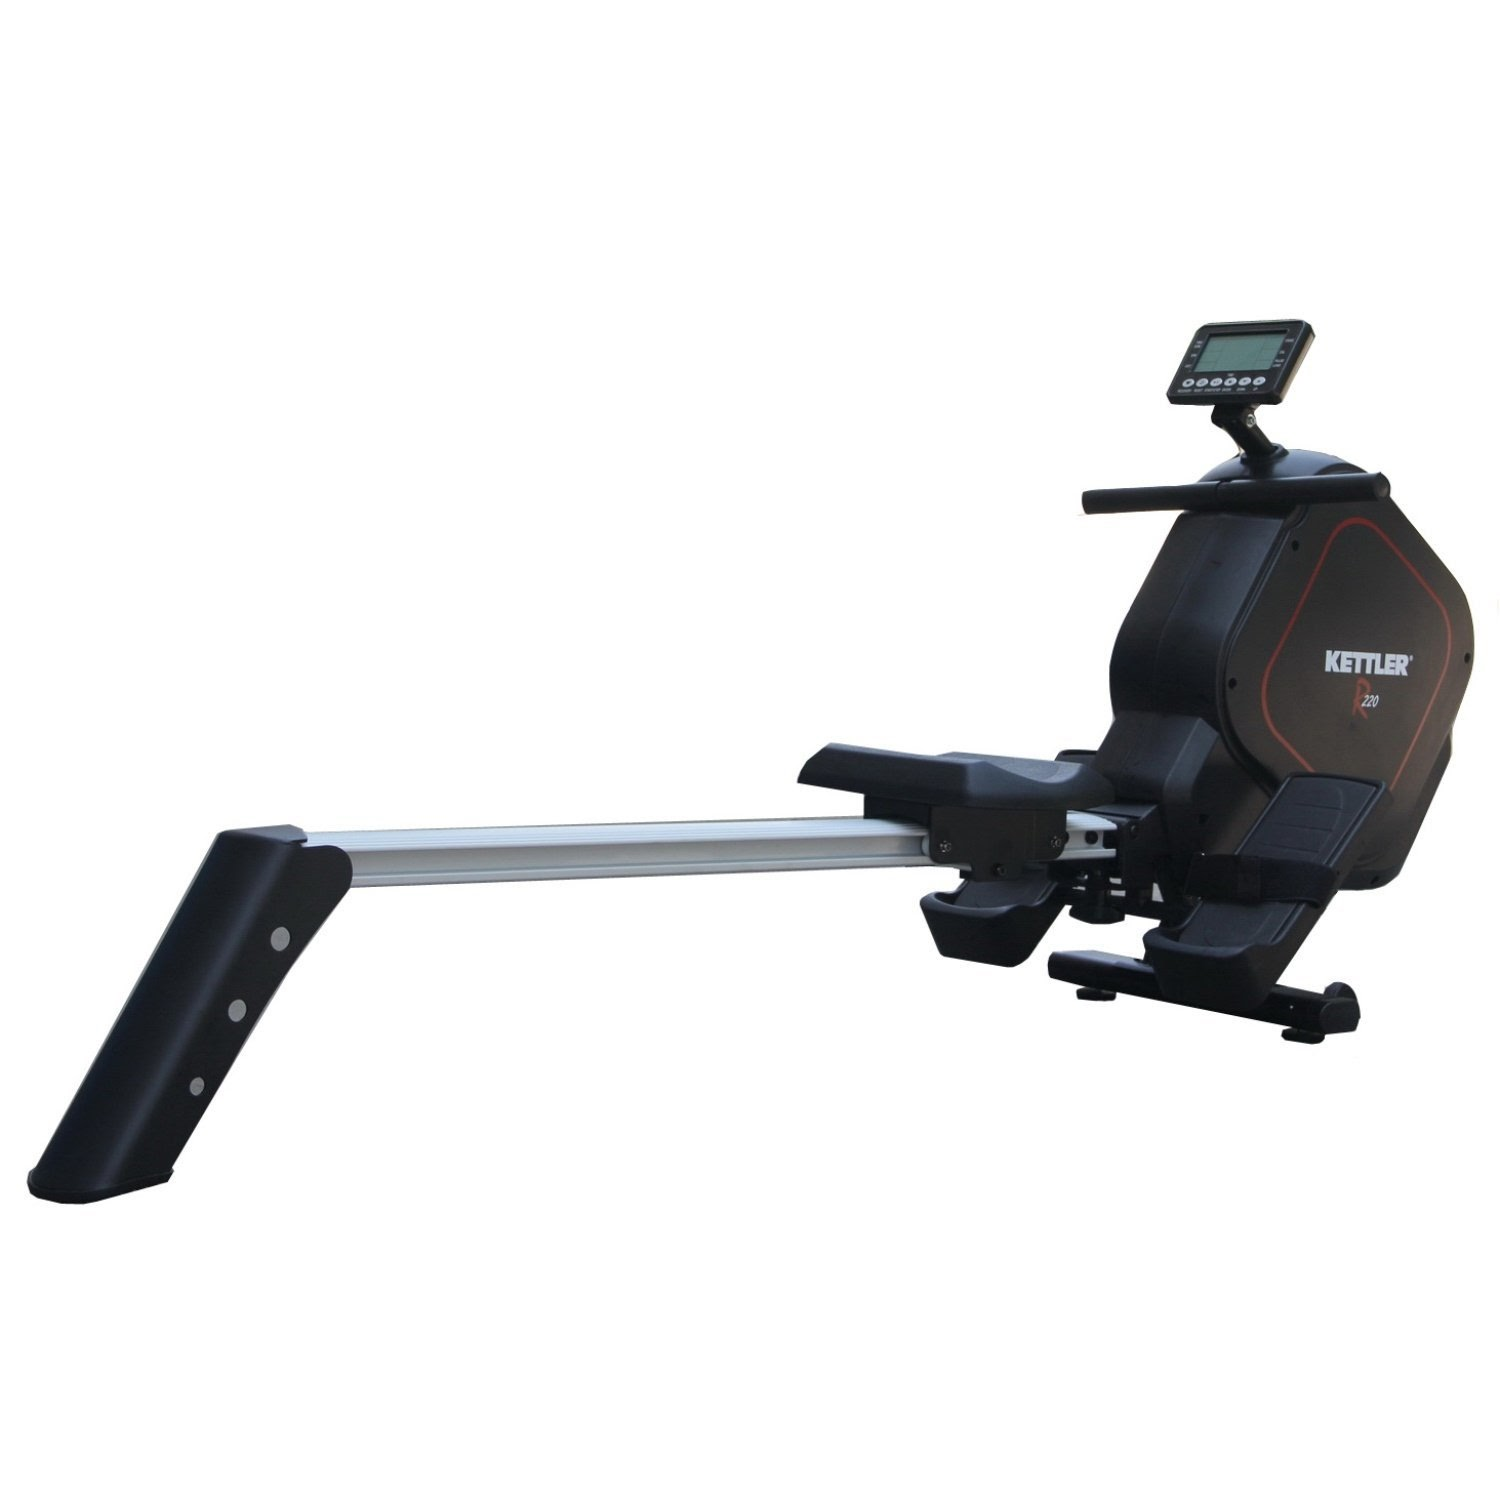 Kettler Fitness Health And Fitness Den Kettler R220 Programmable Magnetic Rower